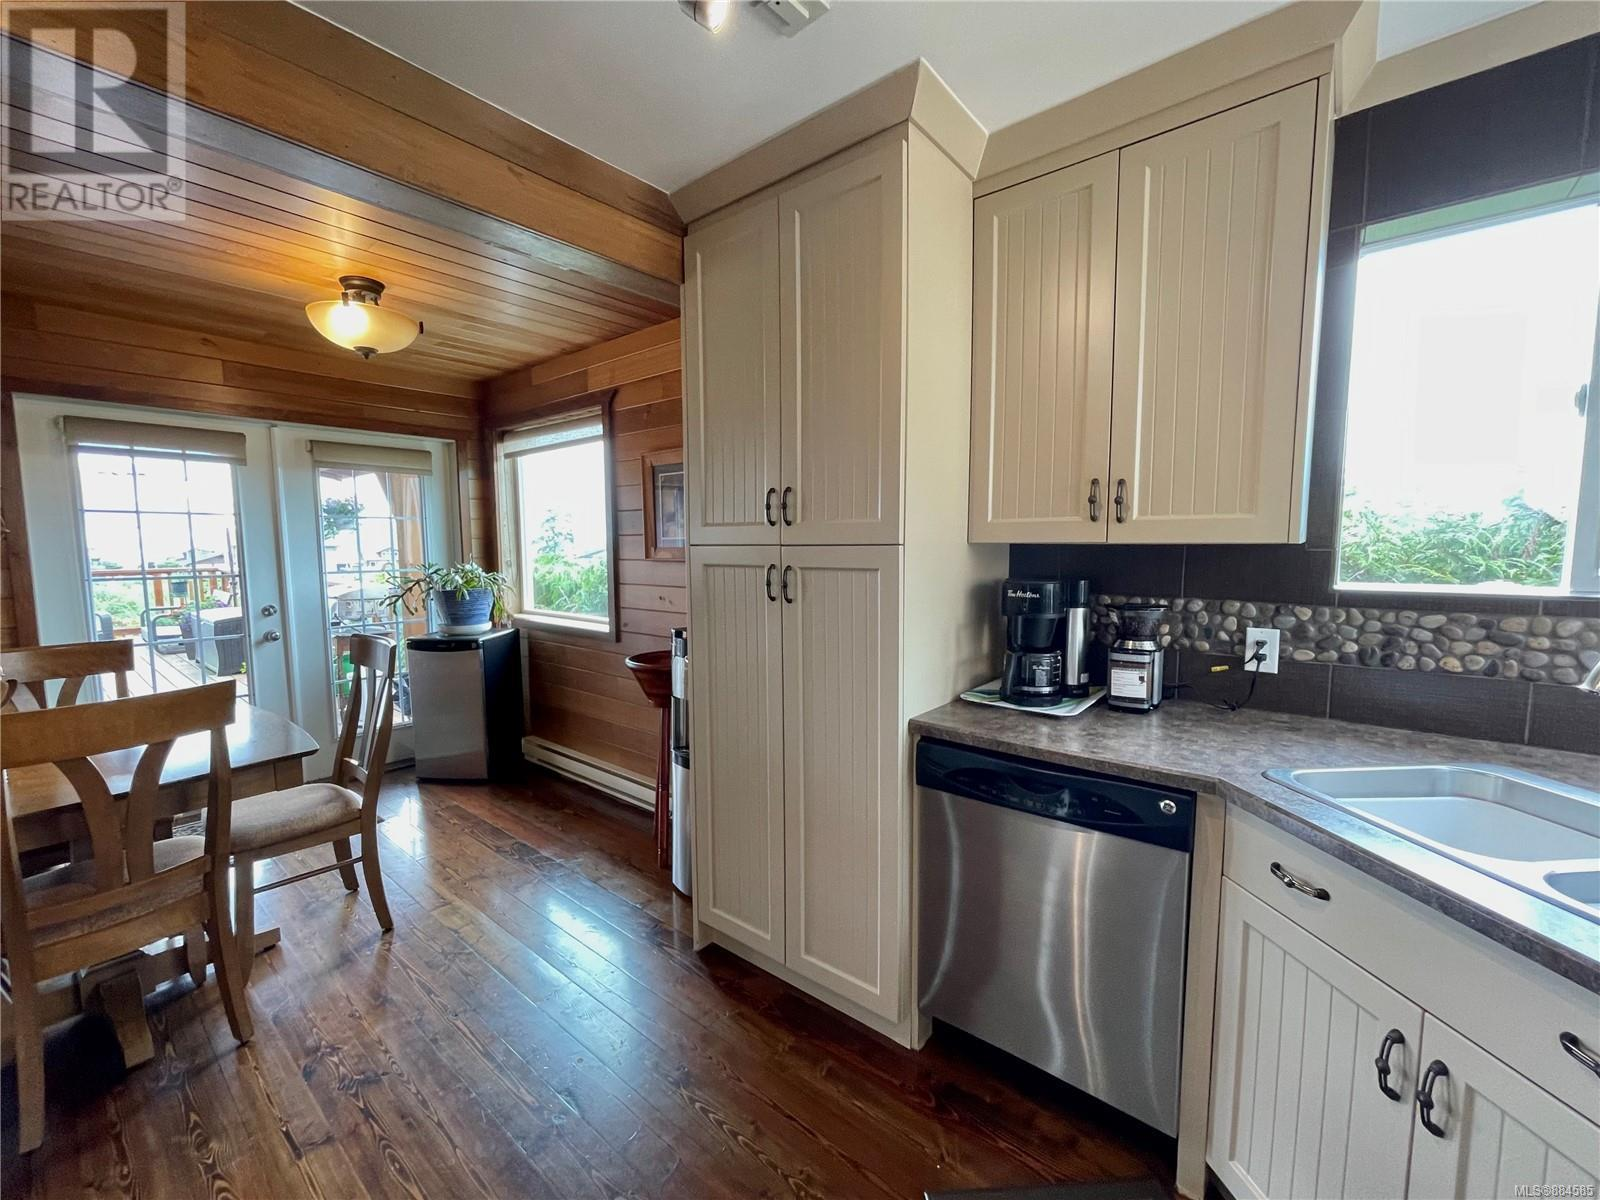 MLS® #884585 - Ucluelet House For sale Image #4